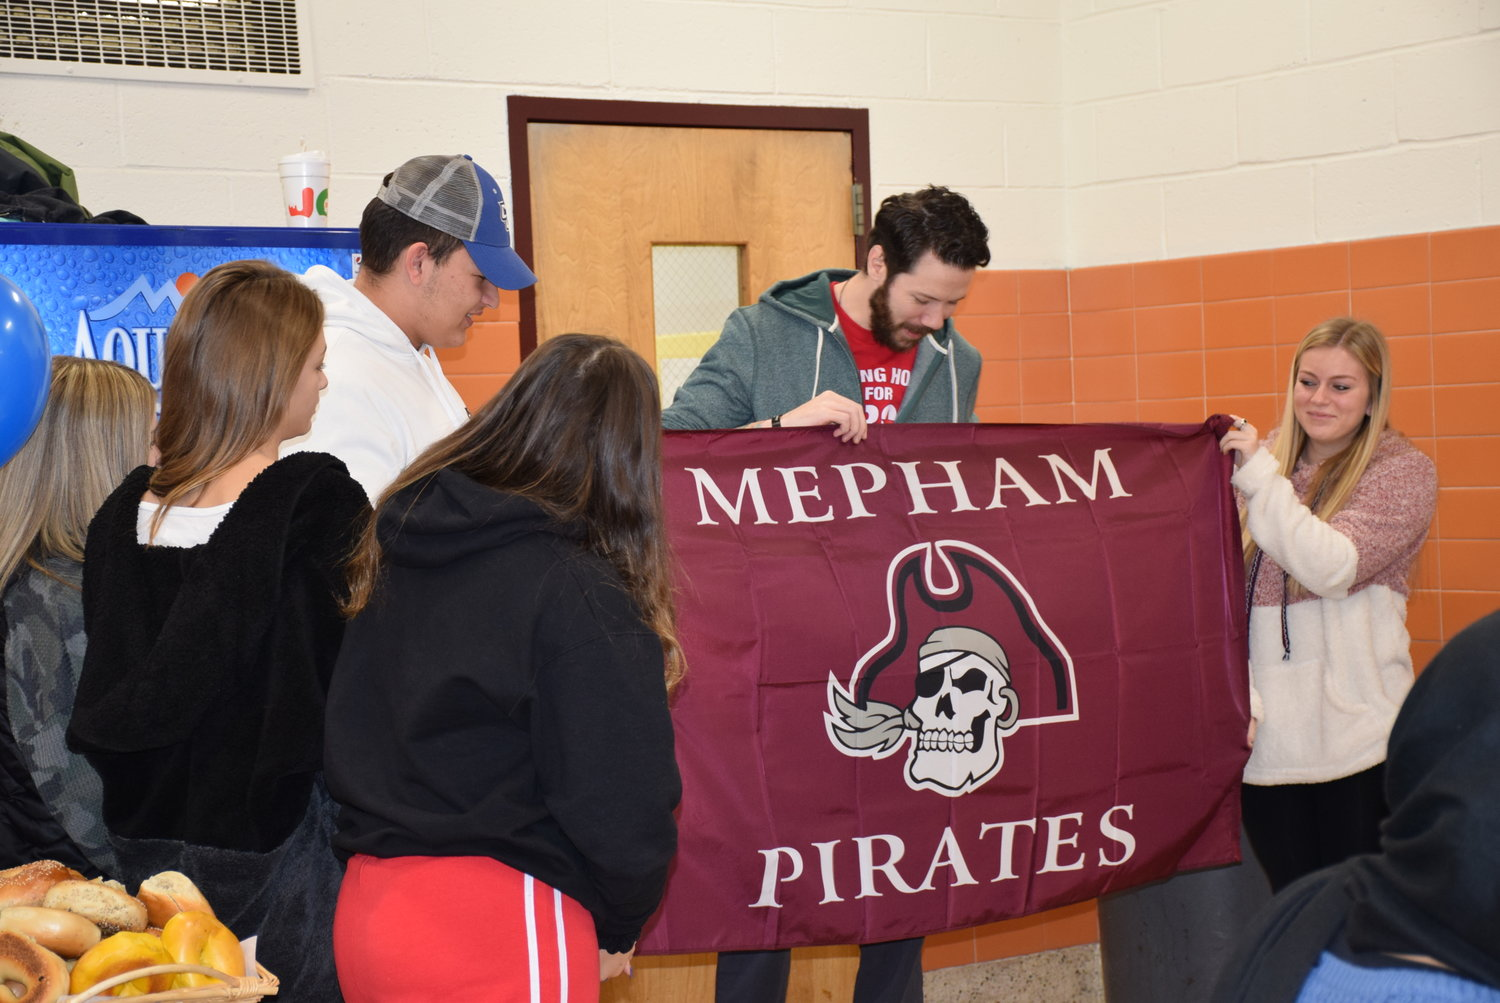 The seniors gave retired U.S. Navy Petty Officer Ryan Shannon a Pirates flag to welcome him to the family.